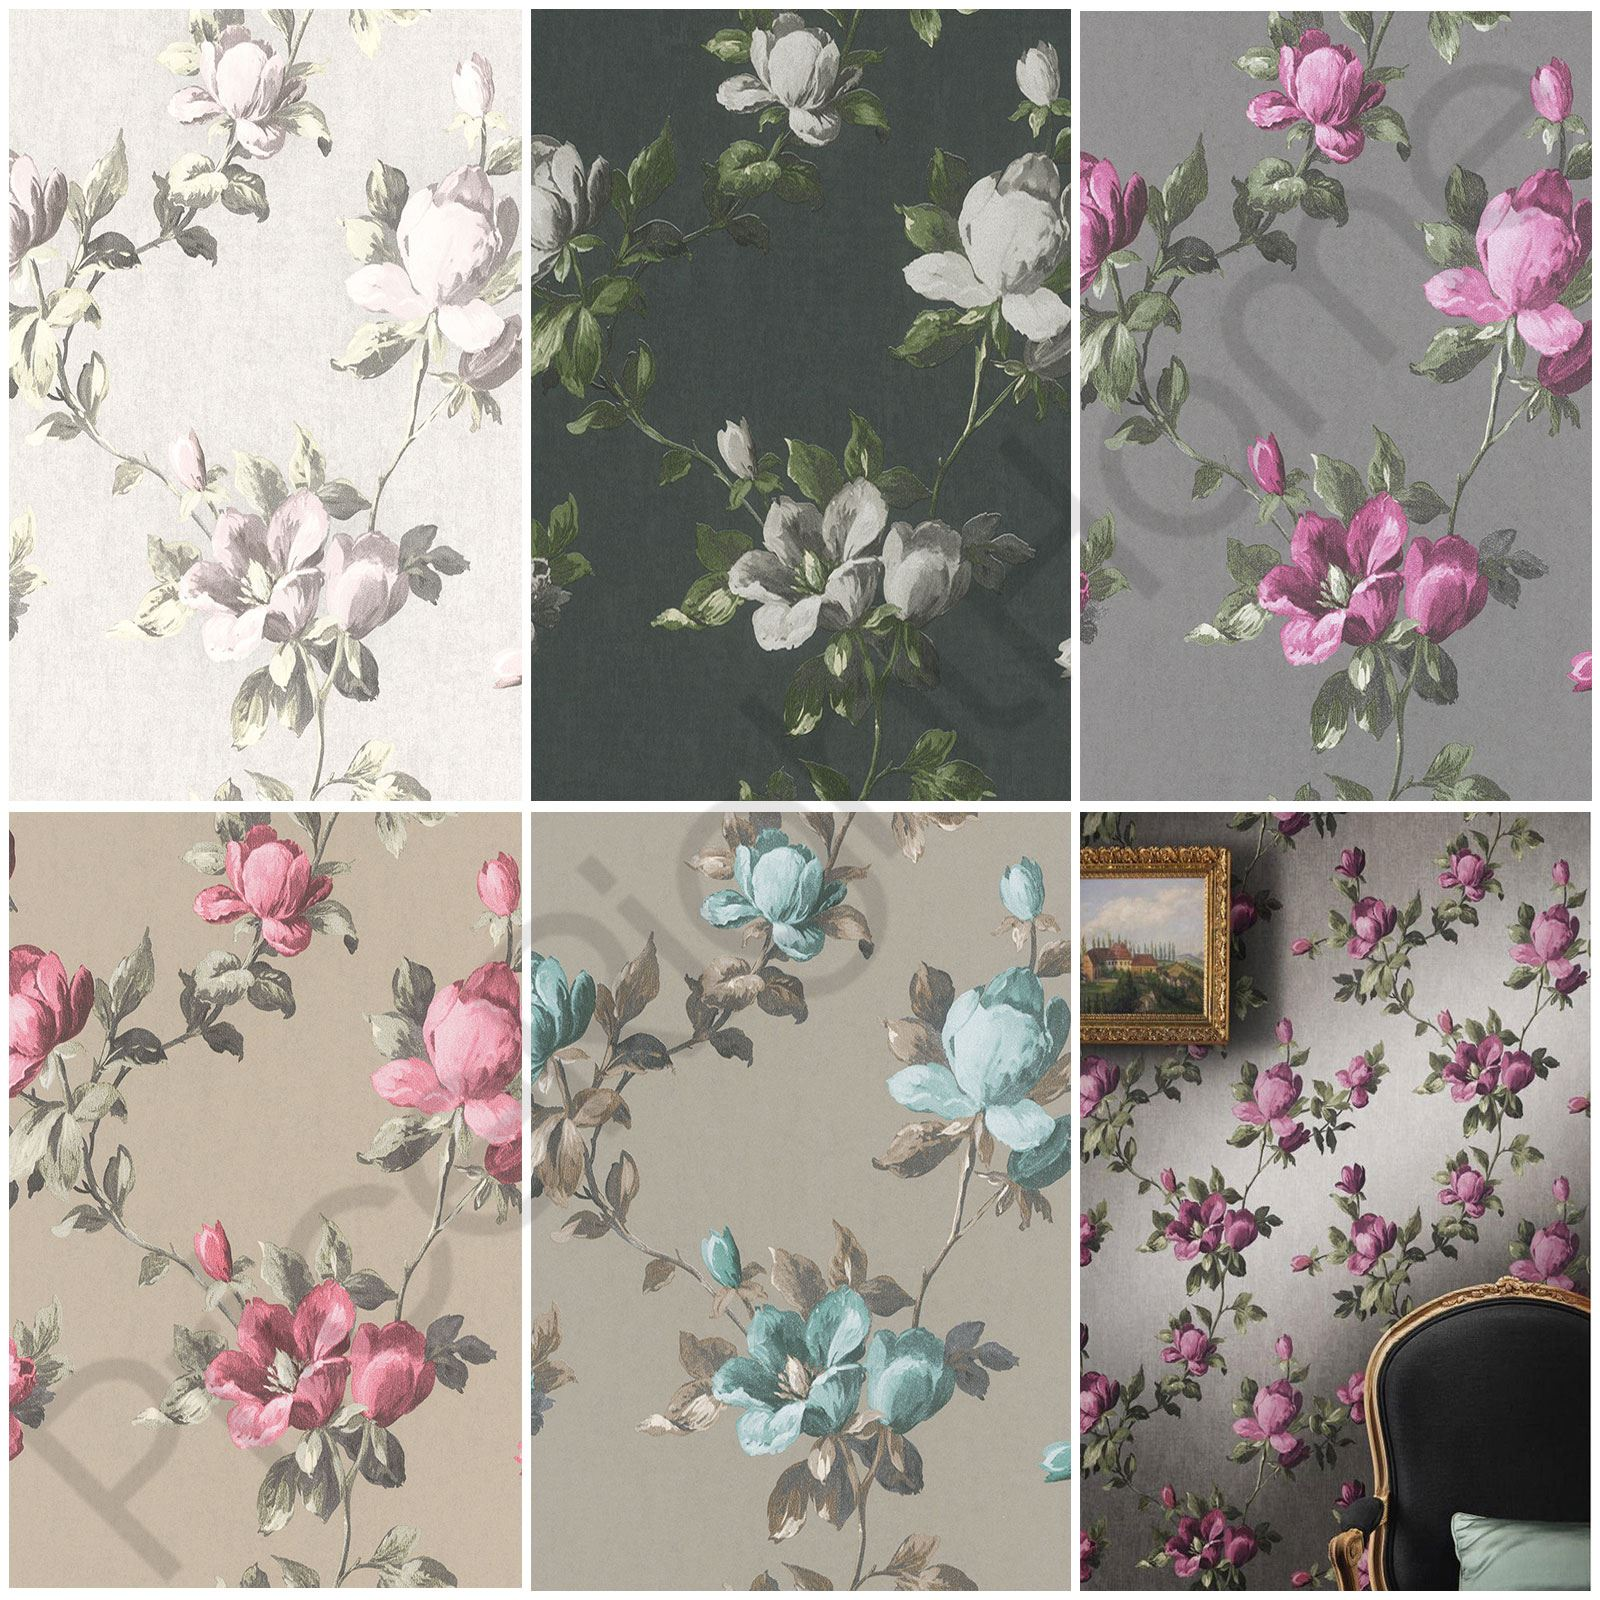 Rasch Emilia Rose Floral Wallpaper Flowers Metallic Gold Cream